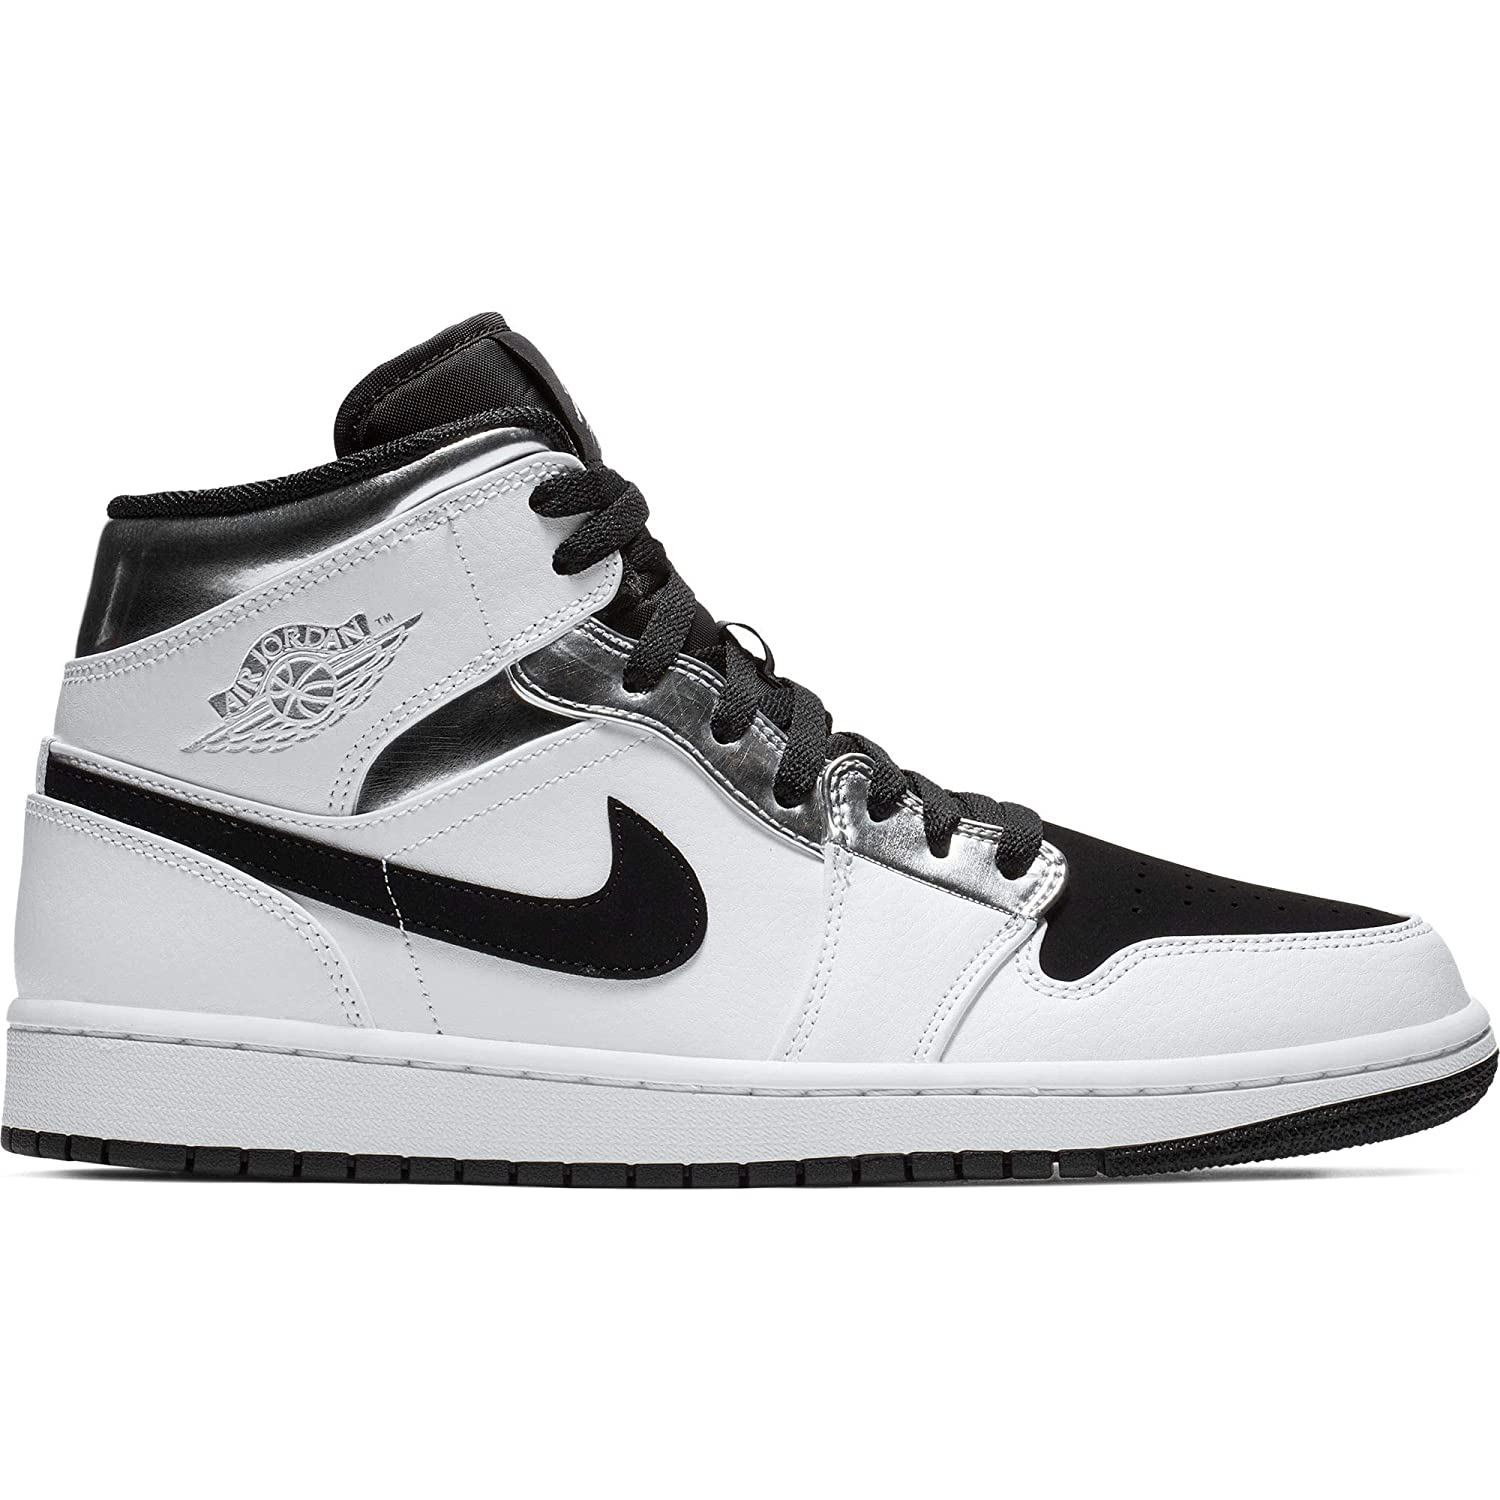 best service 20e5f dde88 Amazon.com   Nike Air Jordan 1 Mid 554724-121 White Metallic Silver - Black  (13)   Basketball